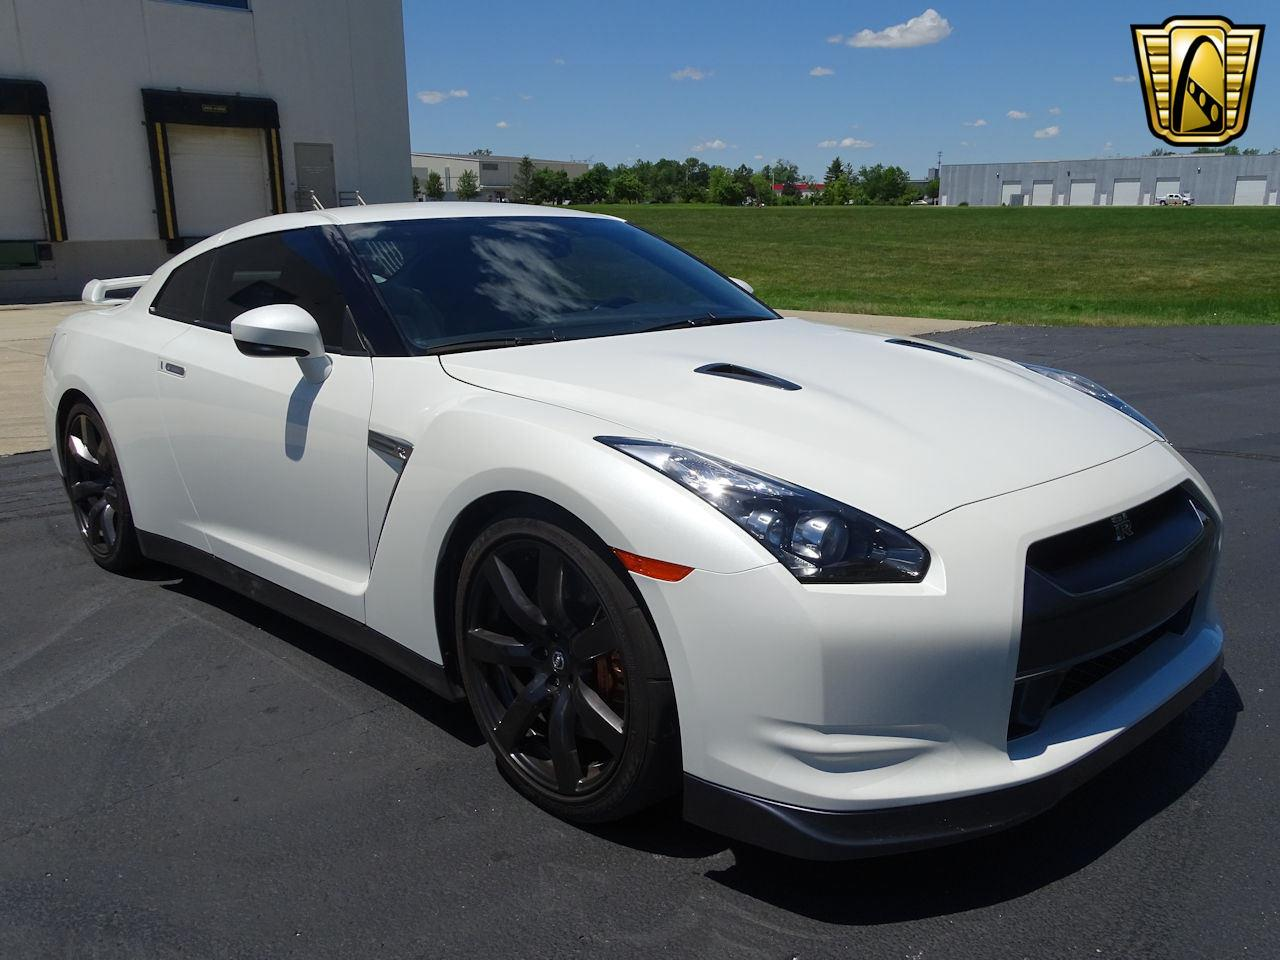 Large Picture of 2010 Nissan GT-R located in Indiana - $65,000.00 - L8WR